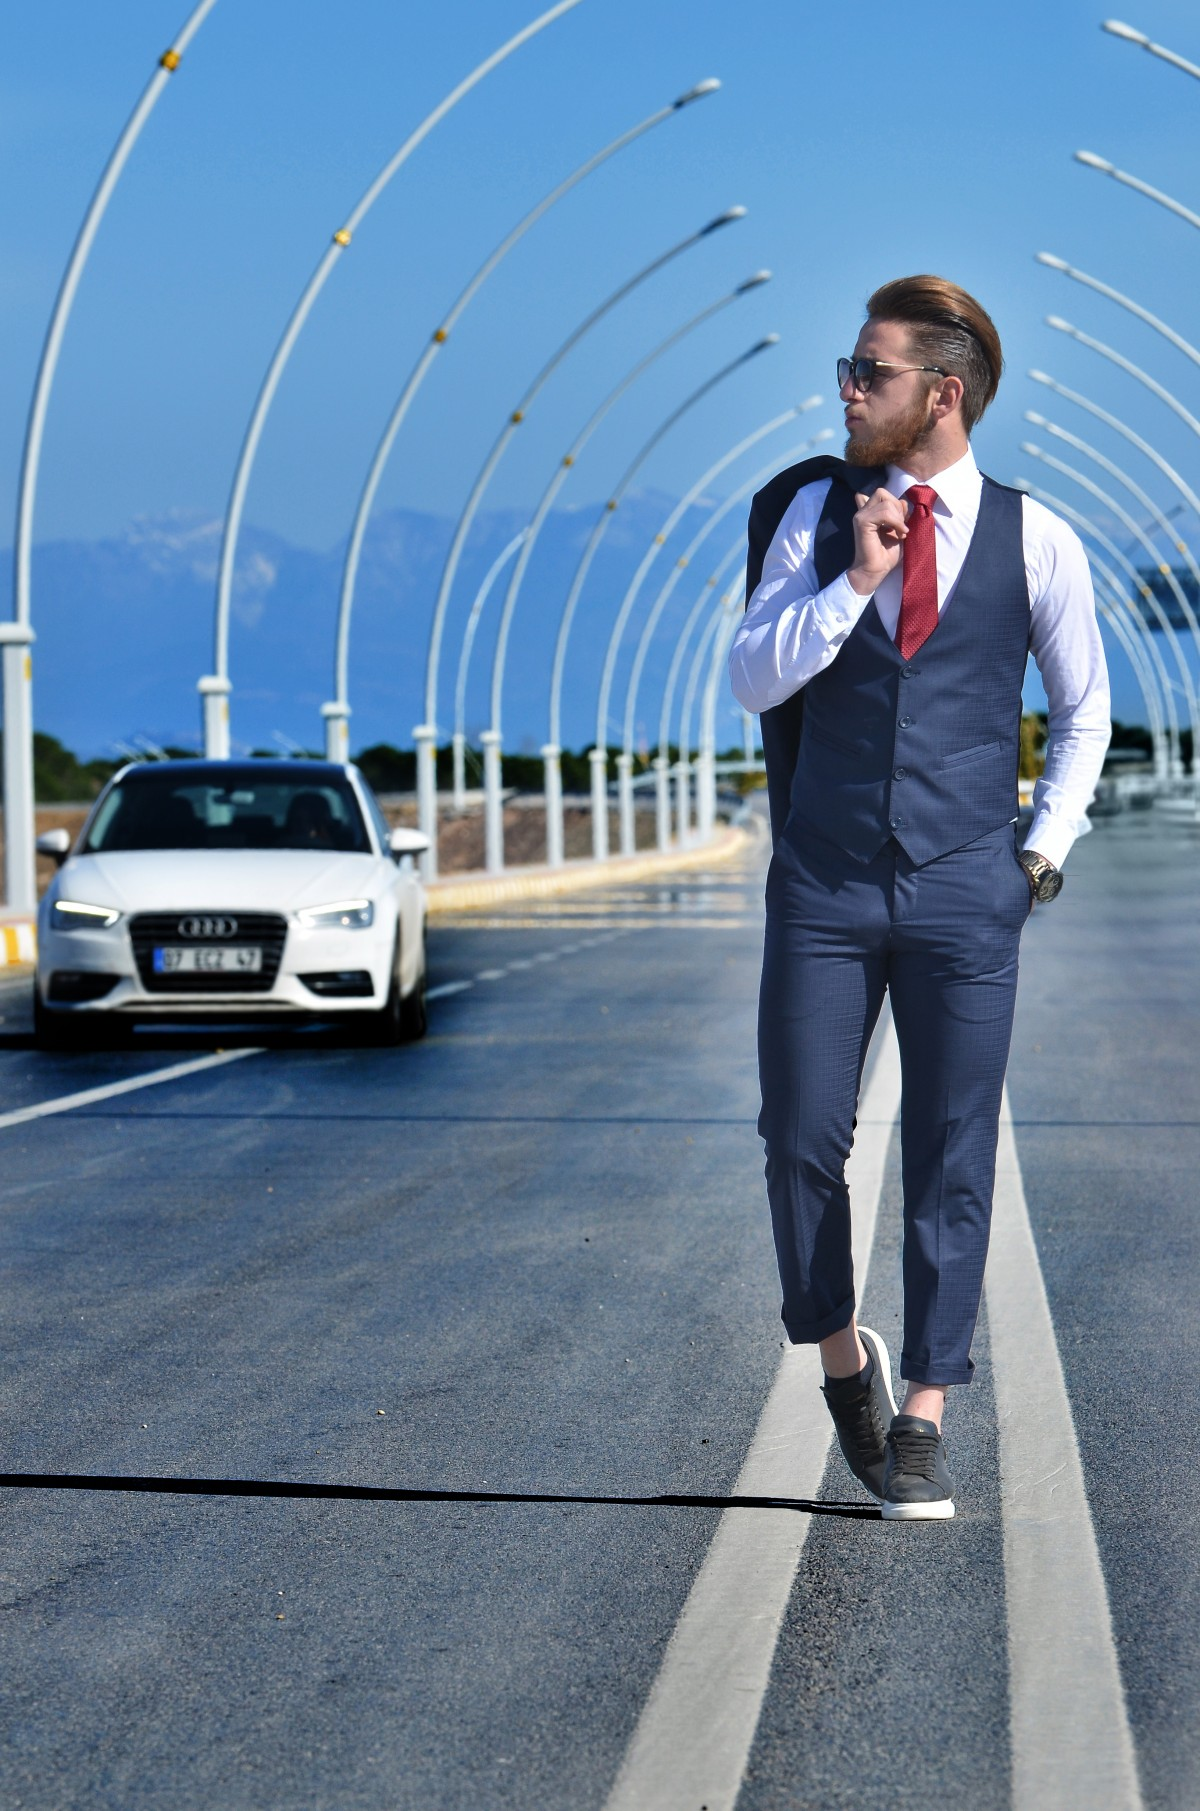 Zakelijk Pak Free Images : Man, Suit, Road, Street, Car, Photography